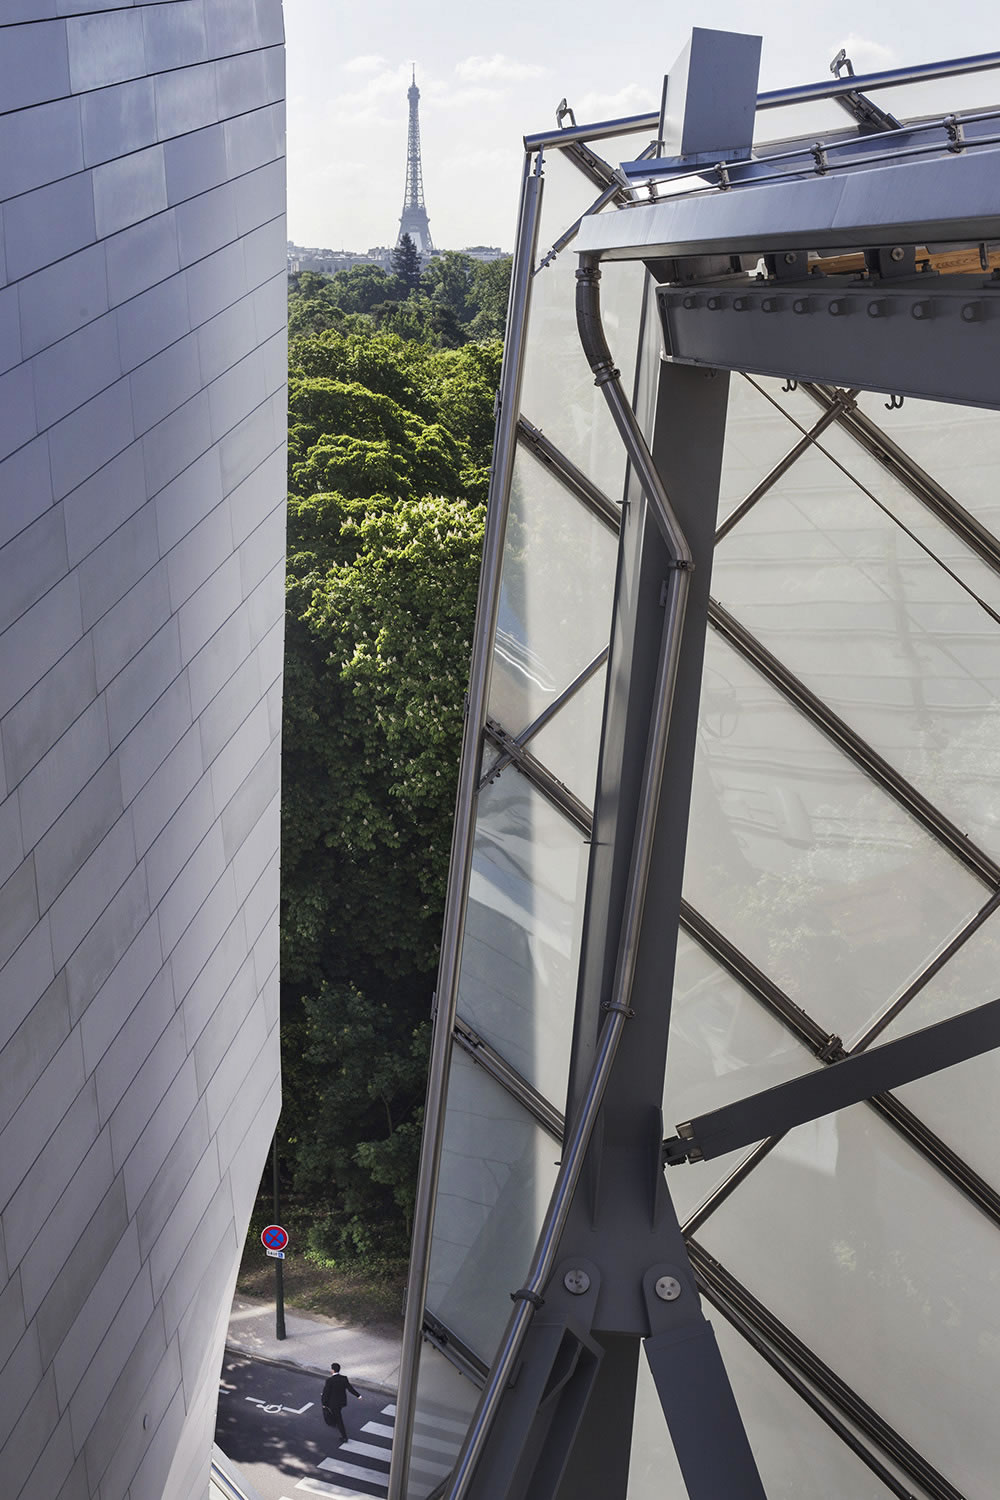 A man leaves the Fondation Louis Vuitton, between what its architect Frank Gehry describes as an iceberg and a glass sail.  The foundation, whose mission is to promote and support contemporary artistic creation, opened to the public in October, 2014 just outside of Paris at the edge of the Bois de Boulogne.